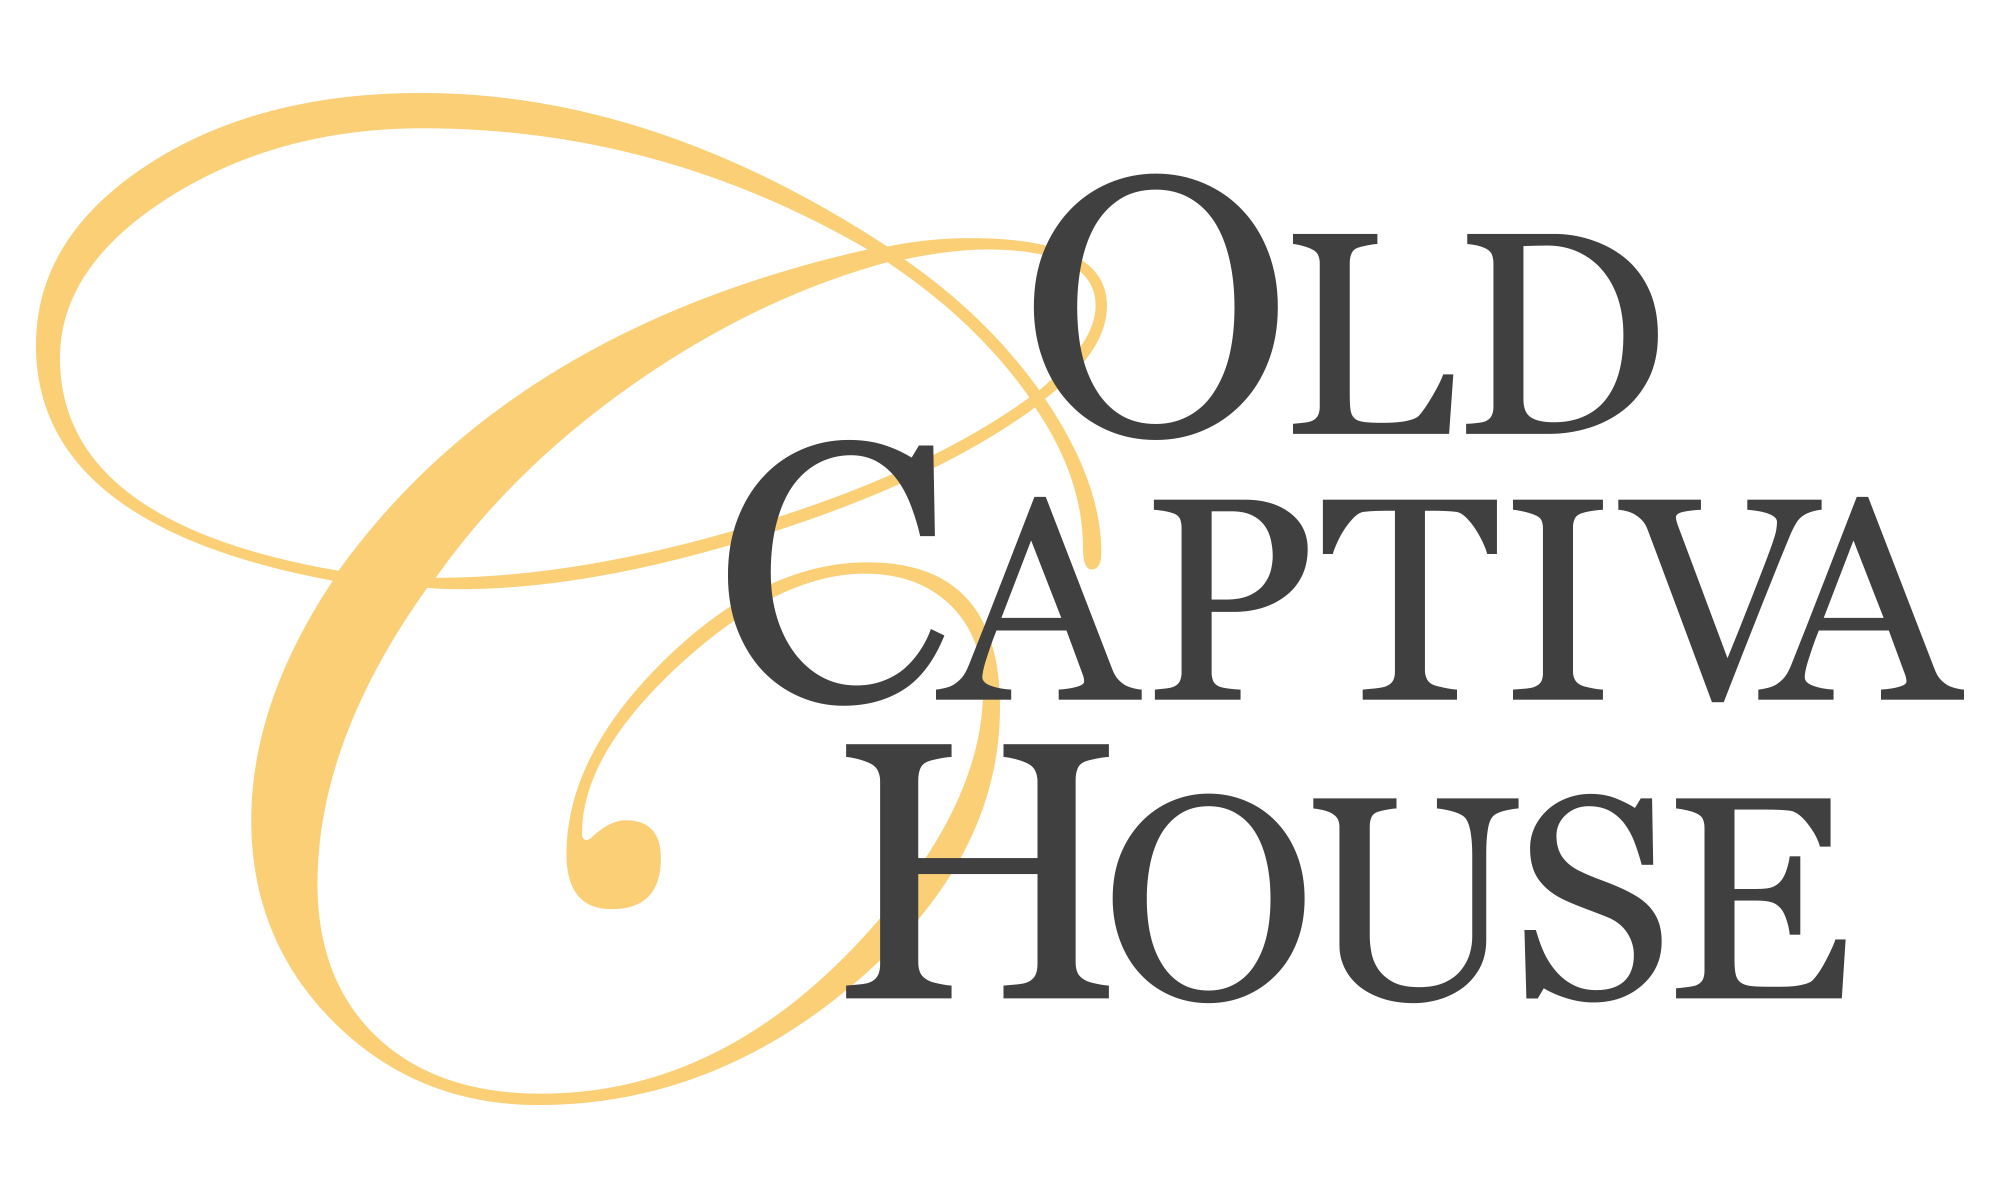 Captiva House New Florida Cuisine Logo